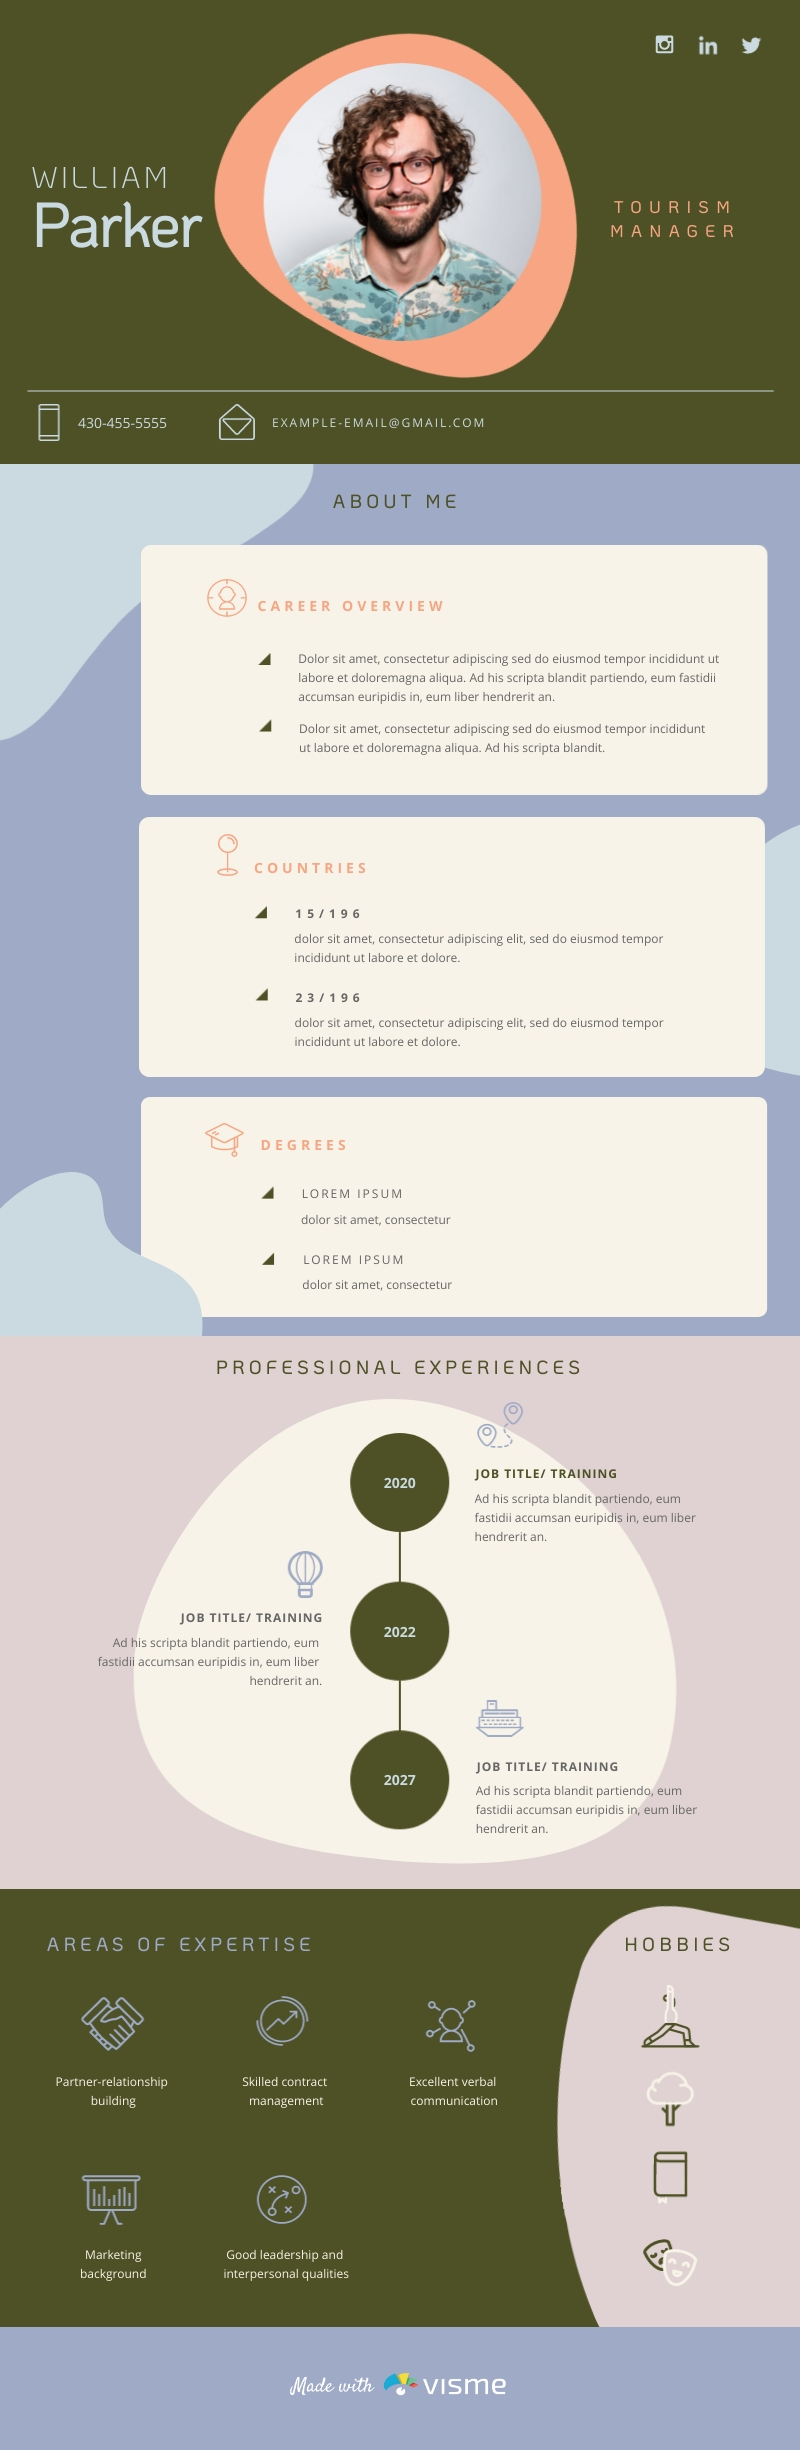 Tourism Manager Resume - Infographic Template